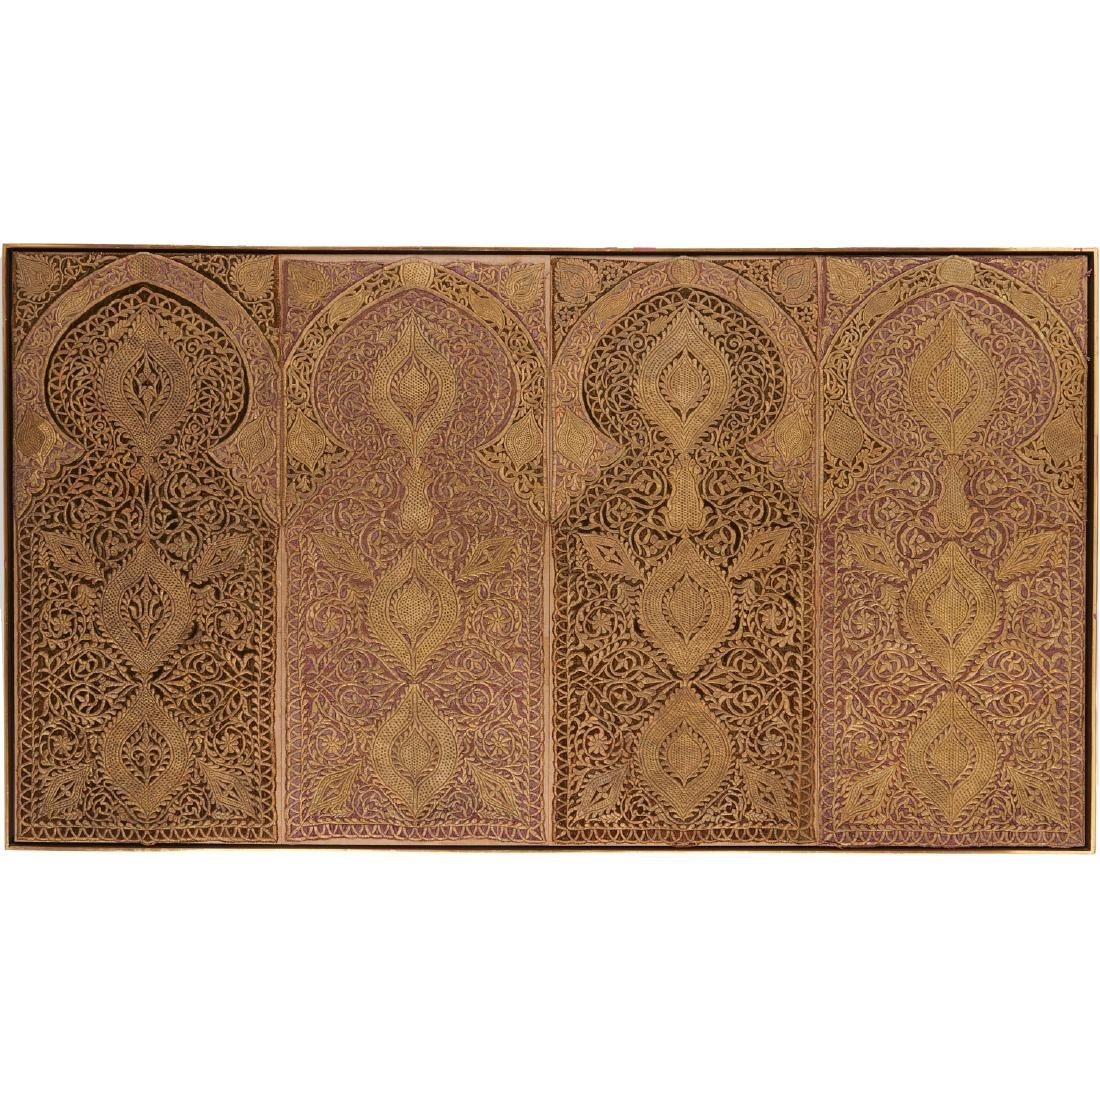 Large Mughal silk and metal threaded tapestry